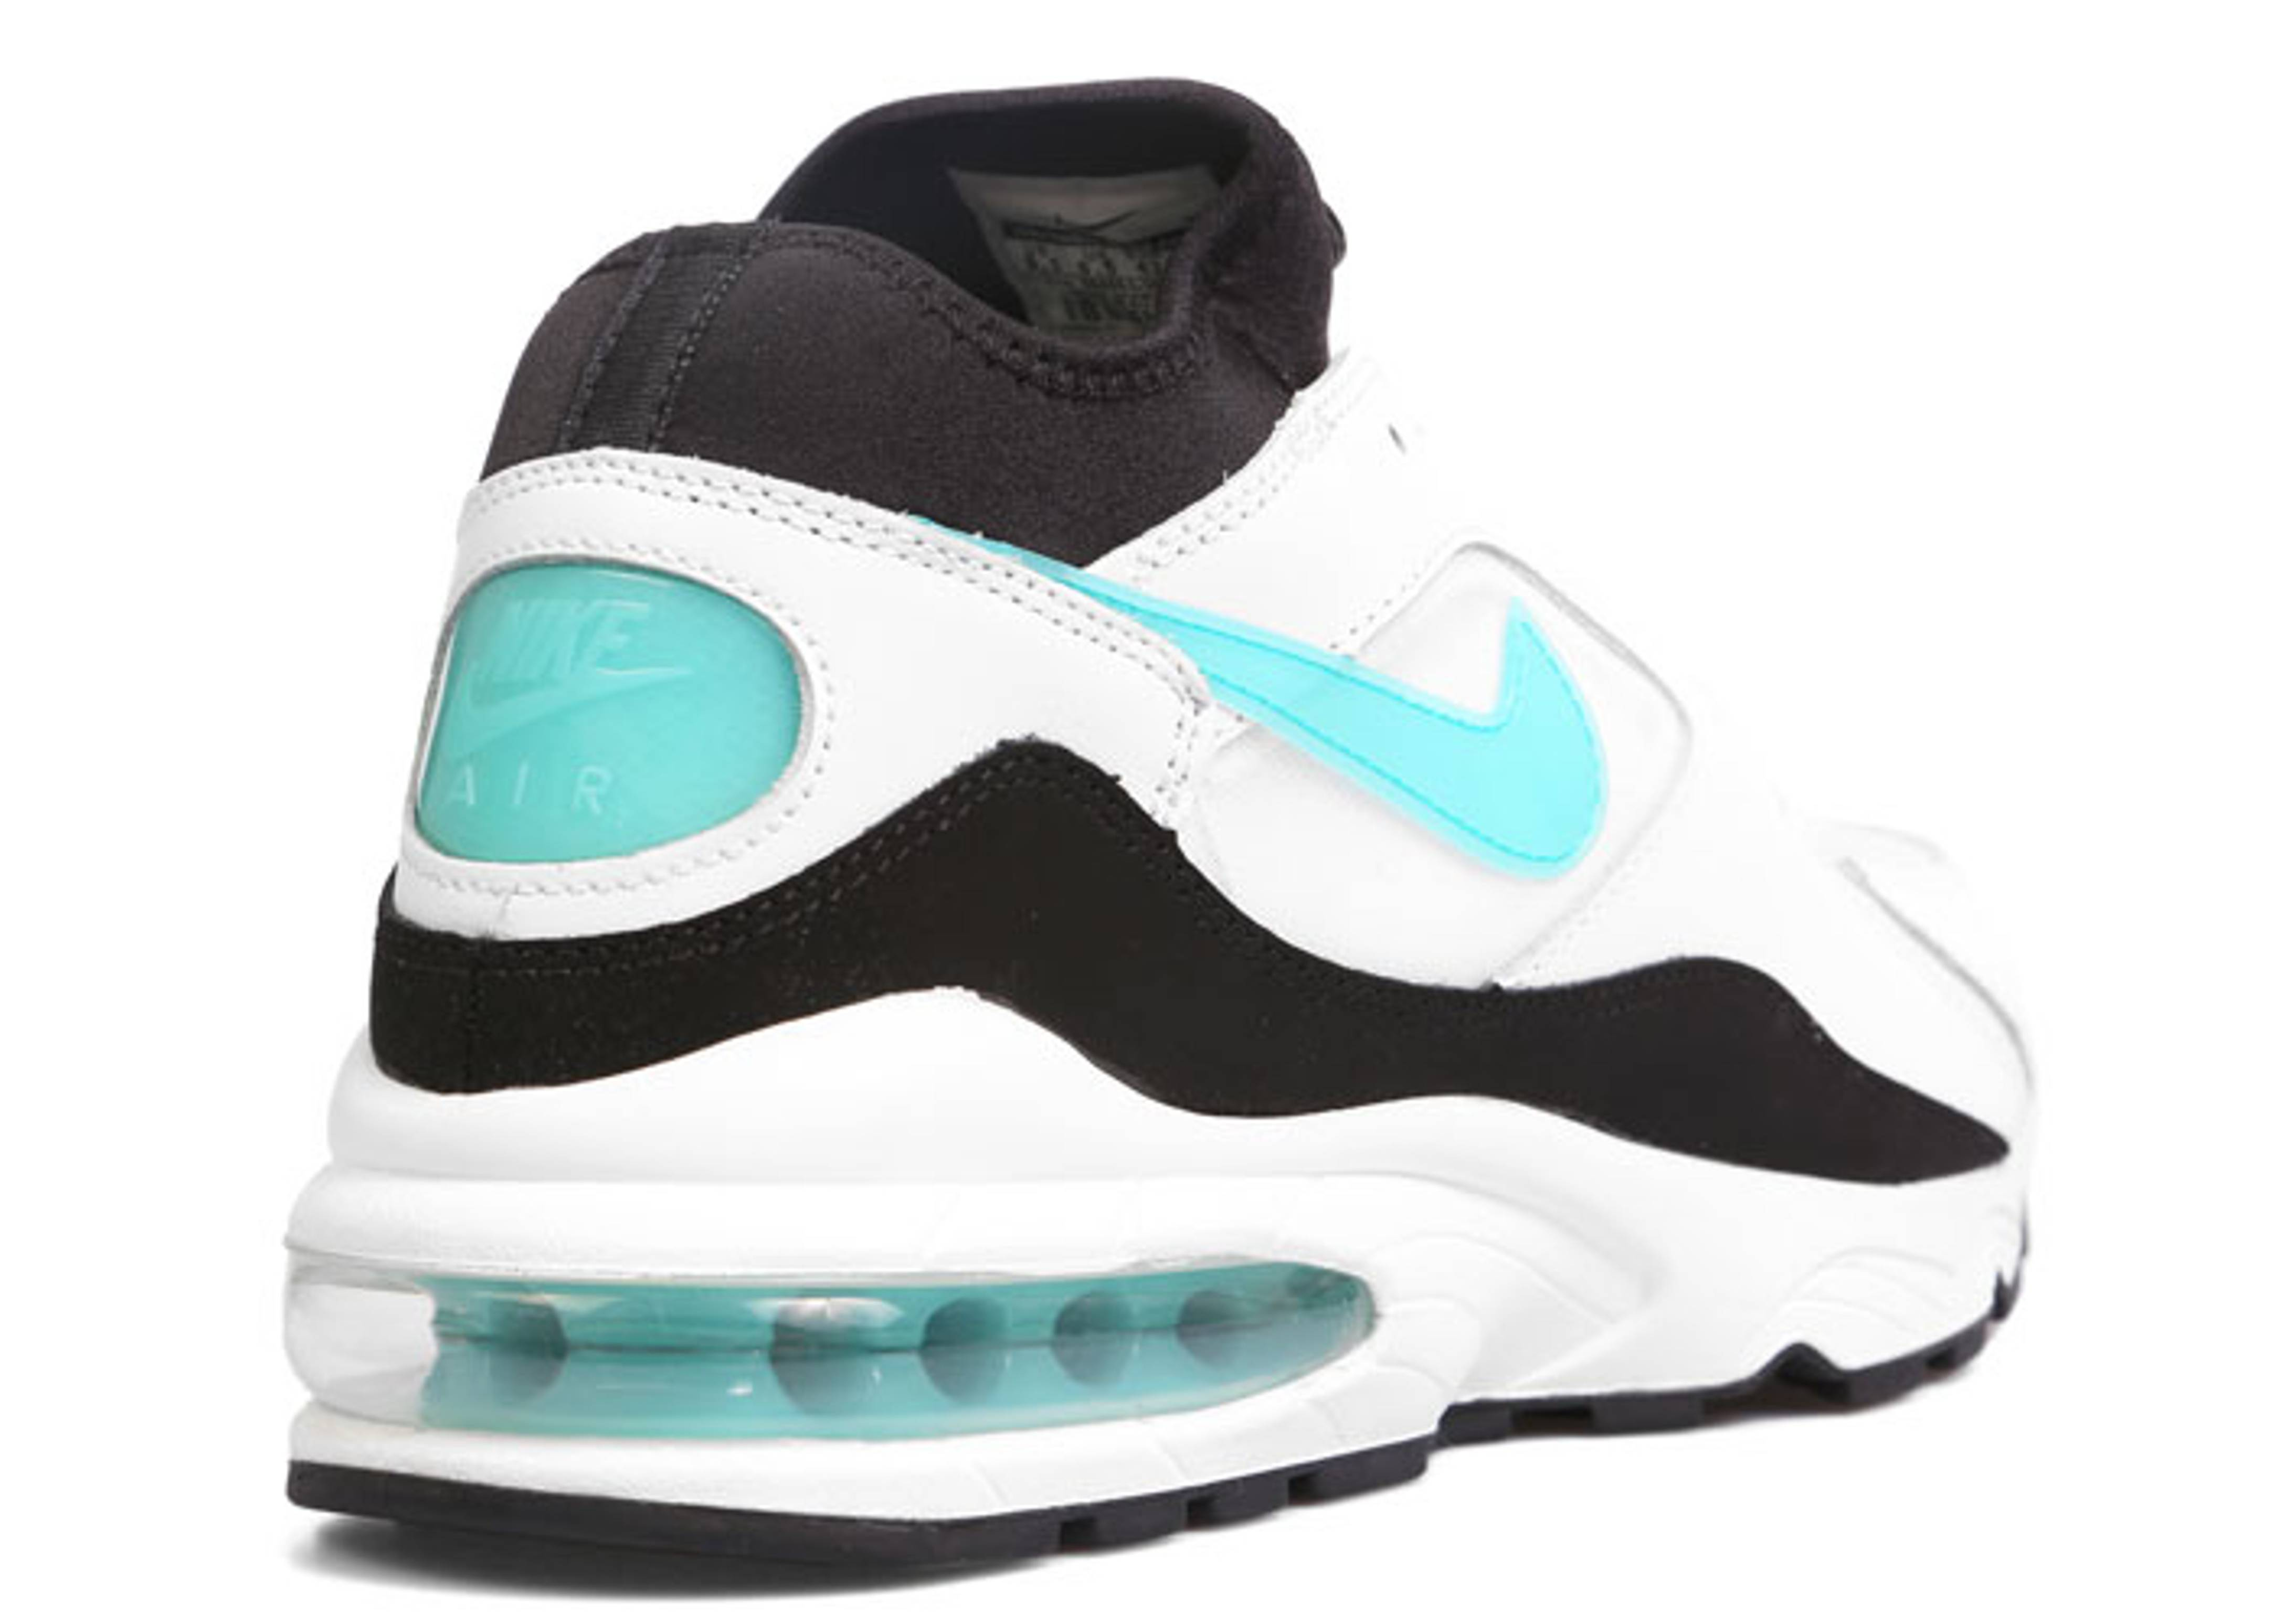 NIKE AIR MAX 93 OG WhiteTurquoise DUSTY CACTUS Men Size 10 #(306551 107)